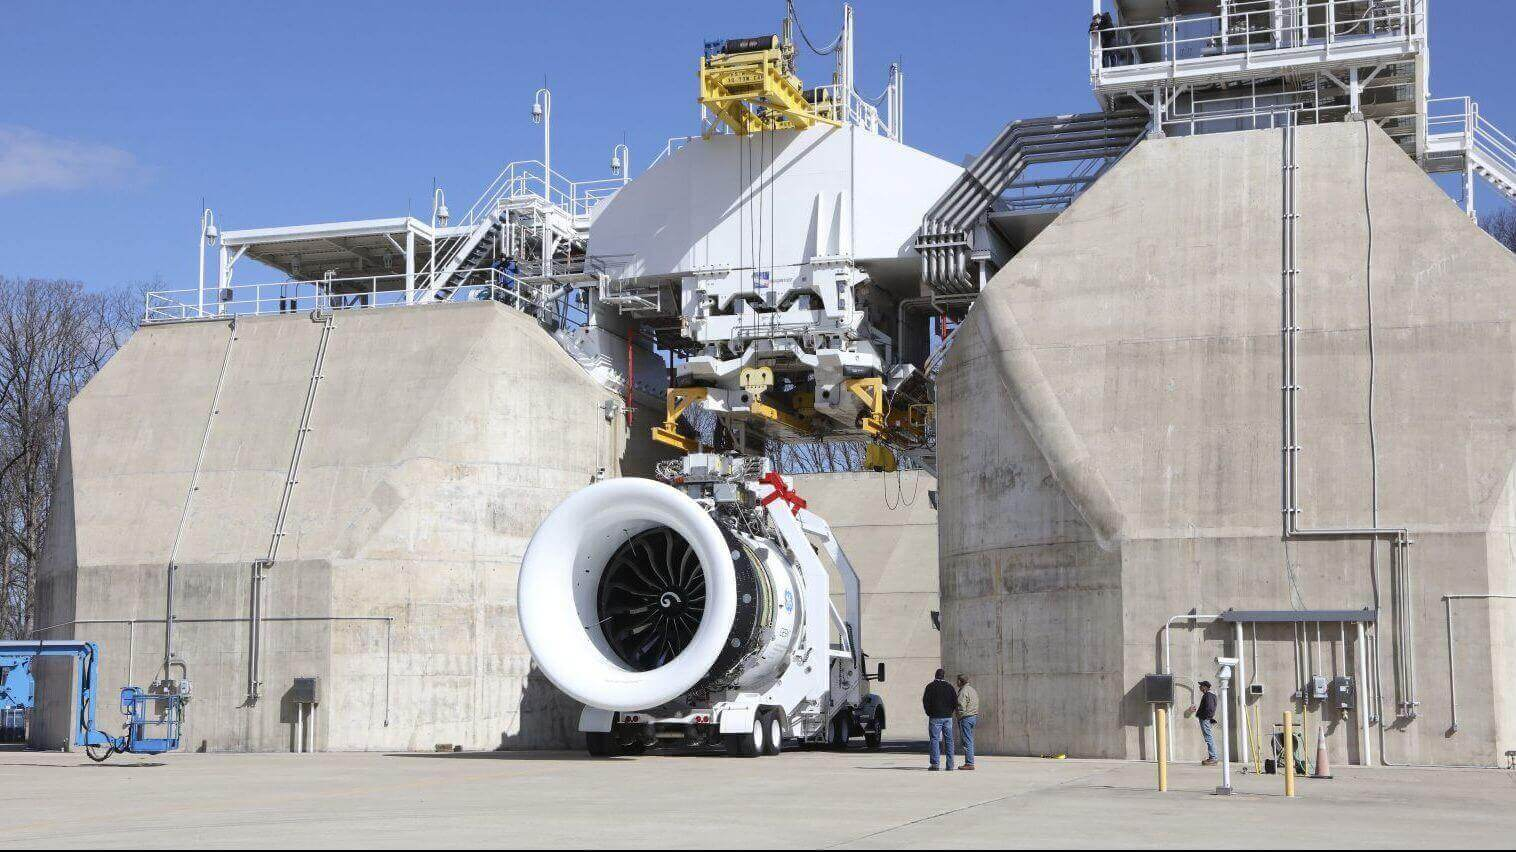 GE Build World's Largest Commercial Jet Engine using 3D Printing | All3DP